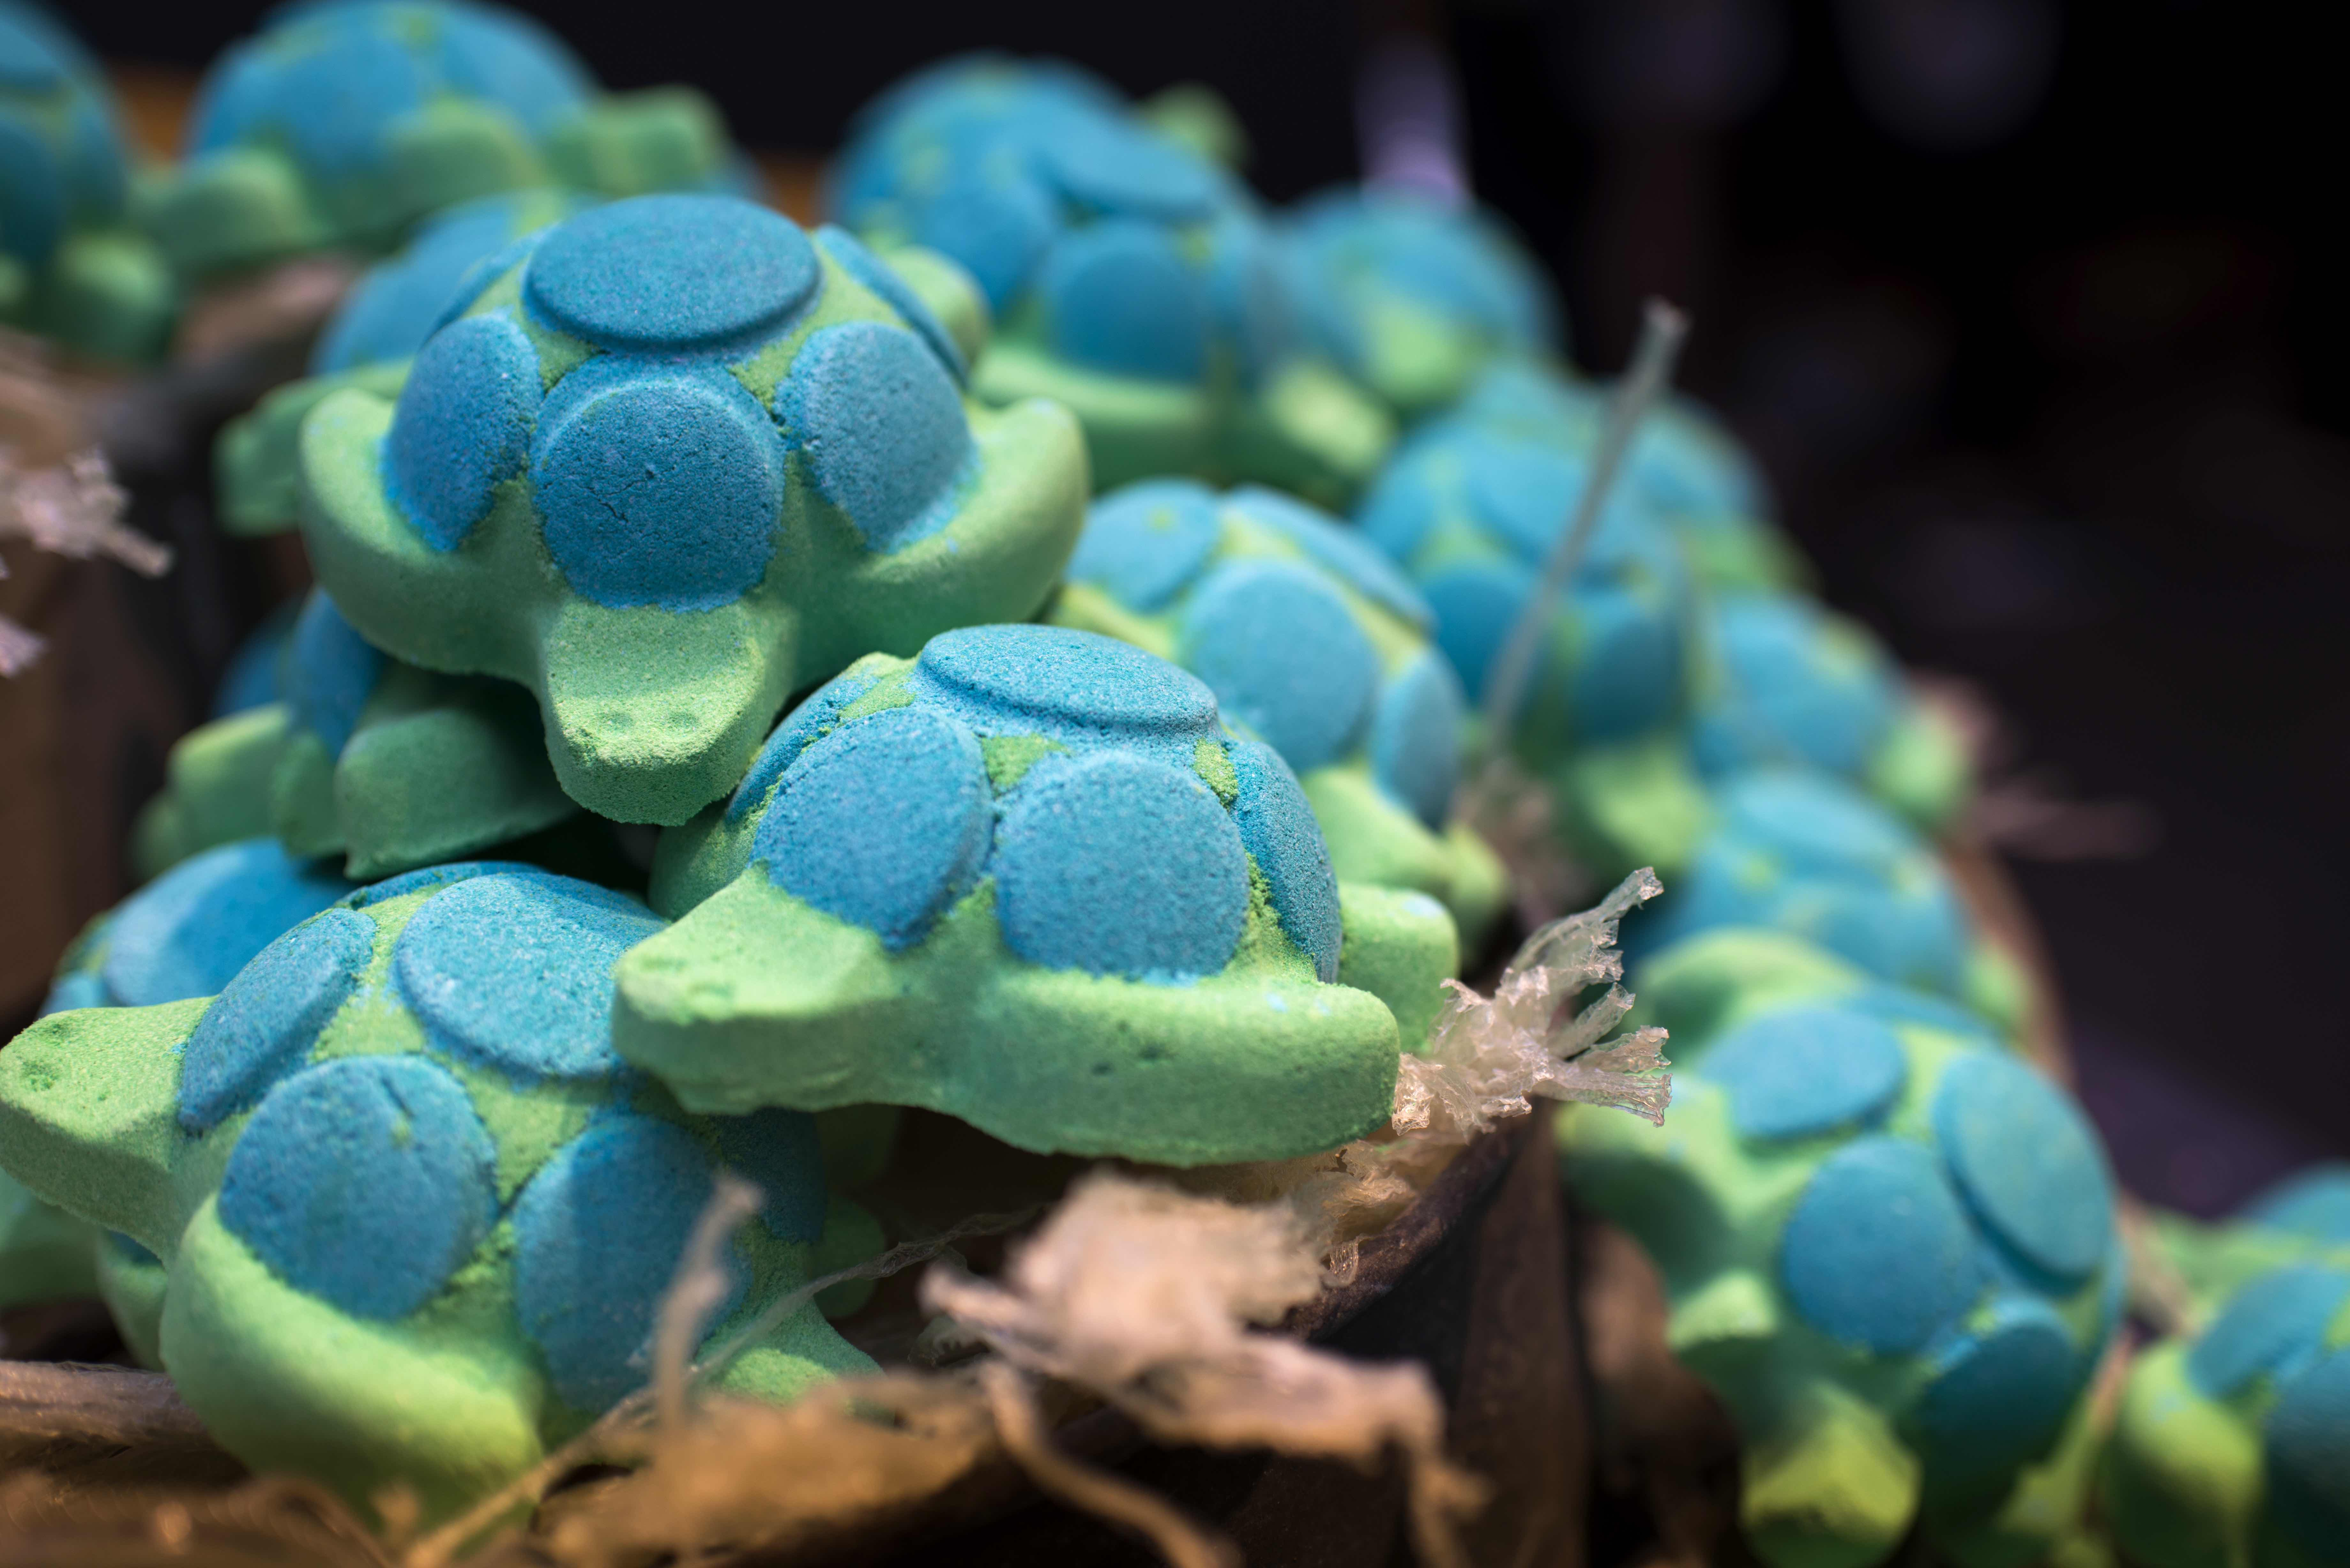 Lush tackles ocean plastic dumping with new campaign